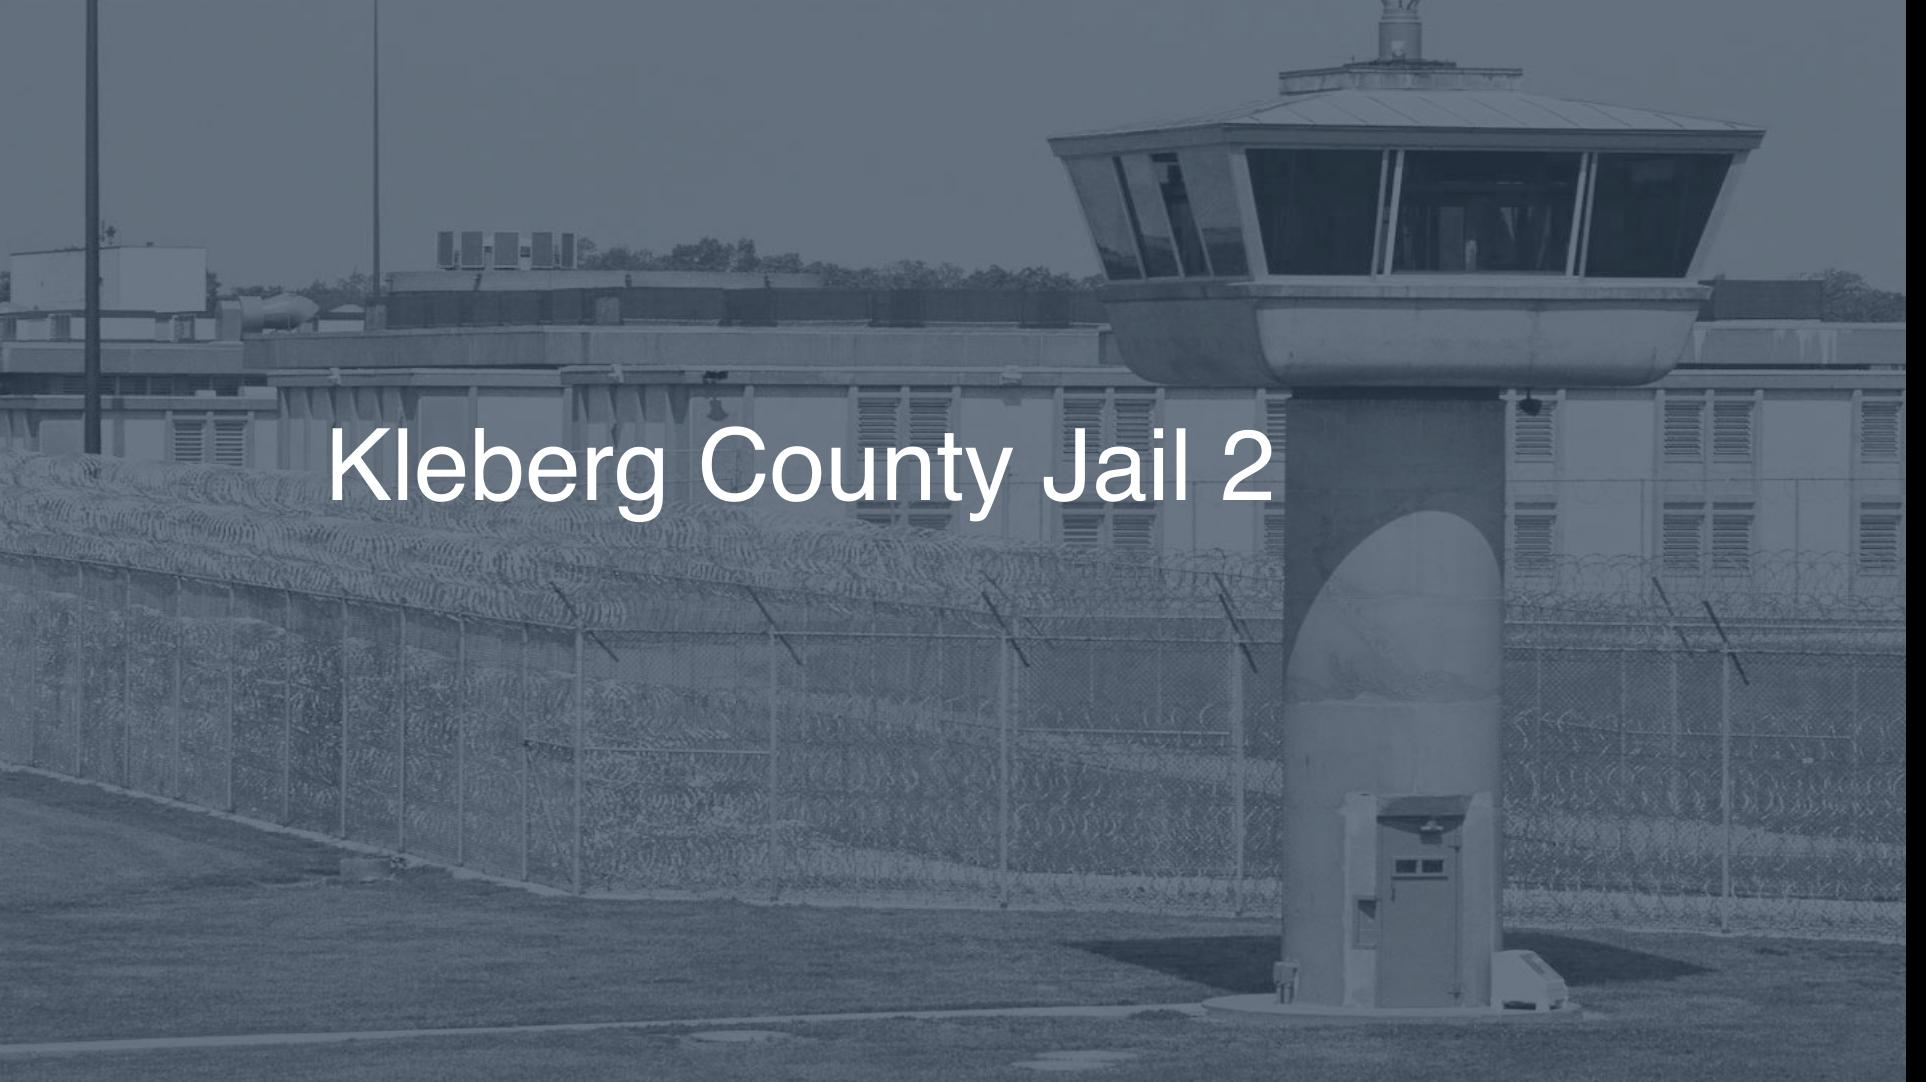 Kleberg County Jail correctional facility picture